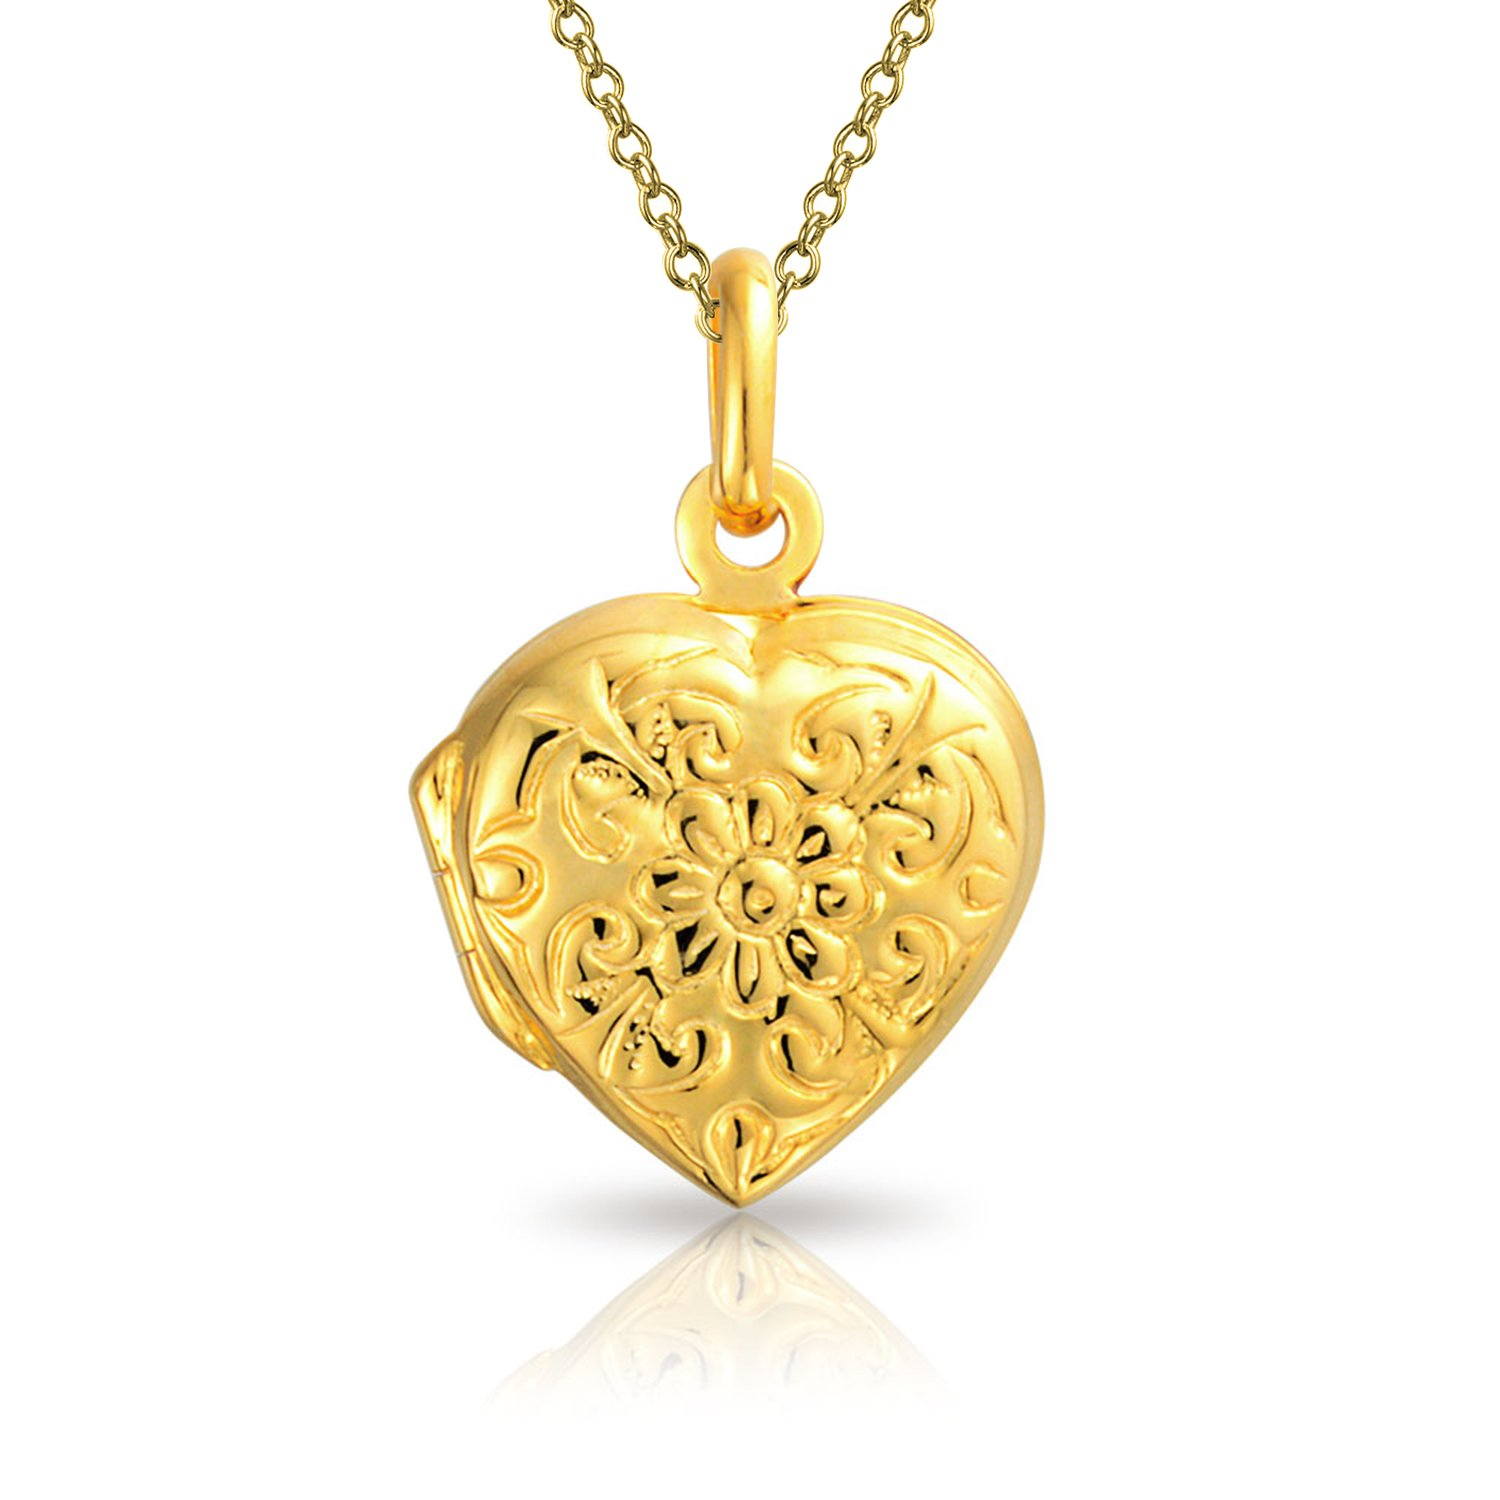 Flower Etched Heart Shaped Locket Gold Plated Pendant by Bling Jewelry